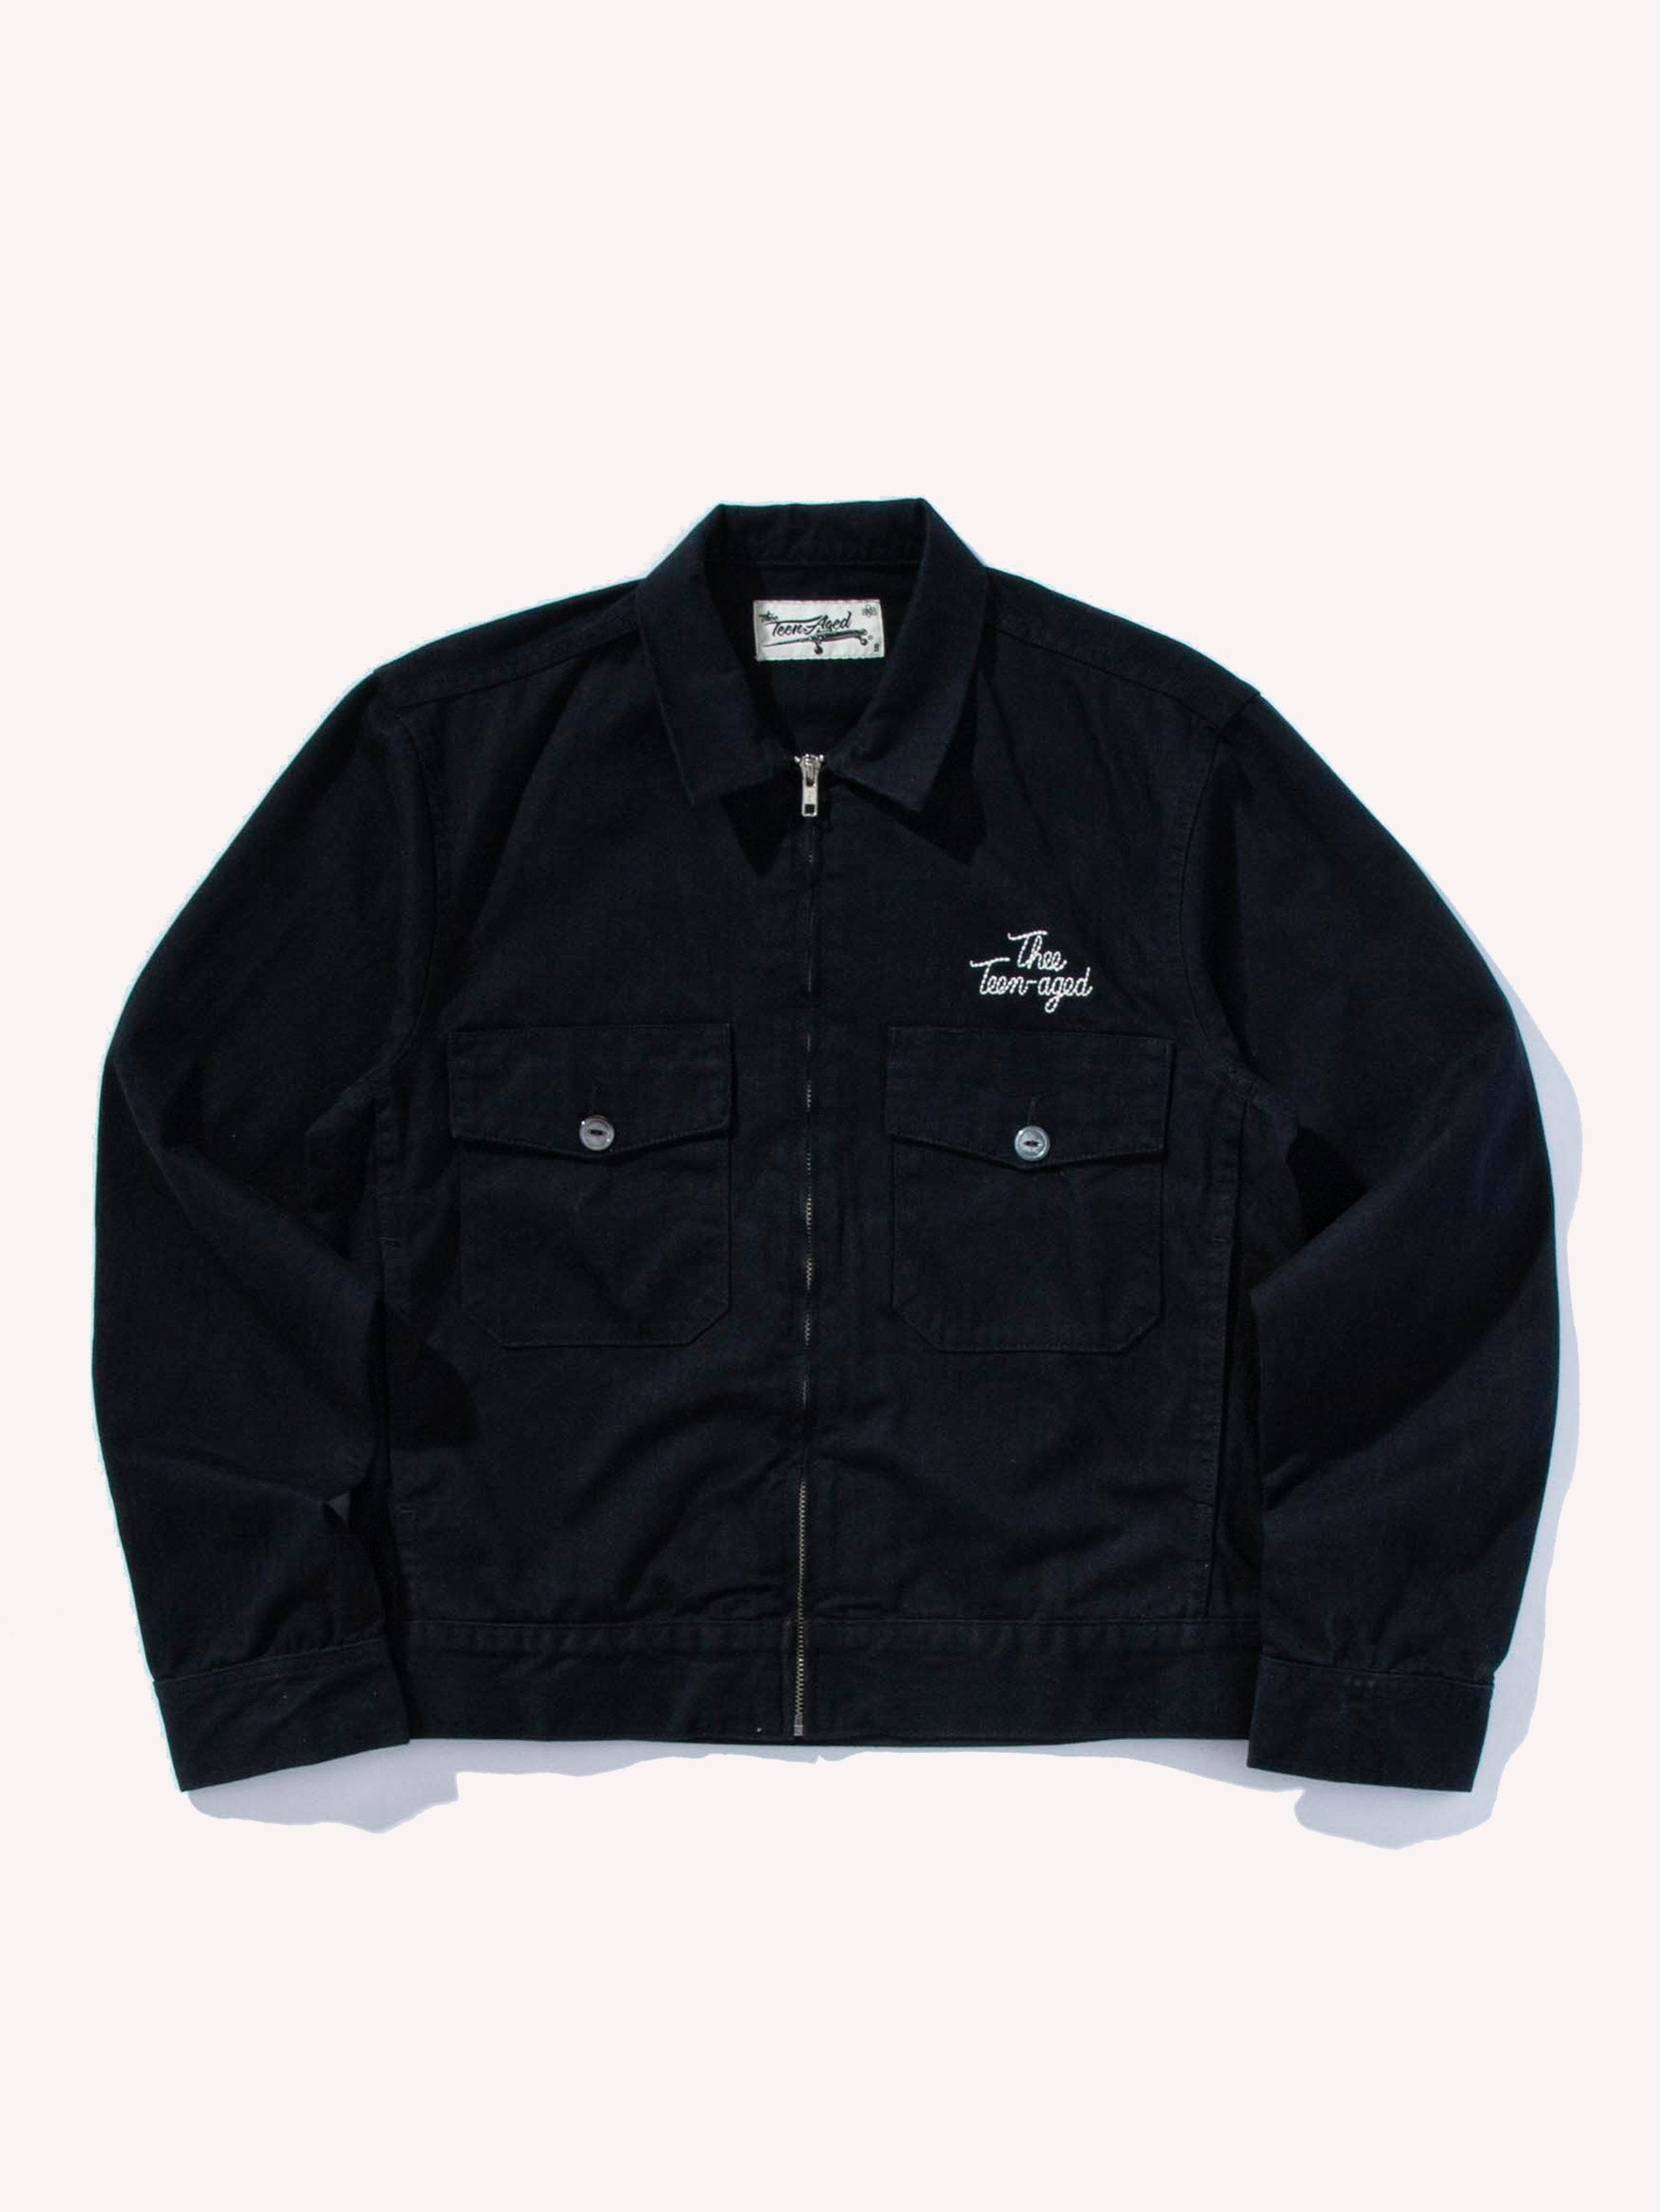 Black Thee Union Jacket 7